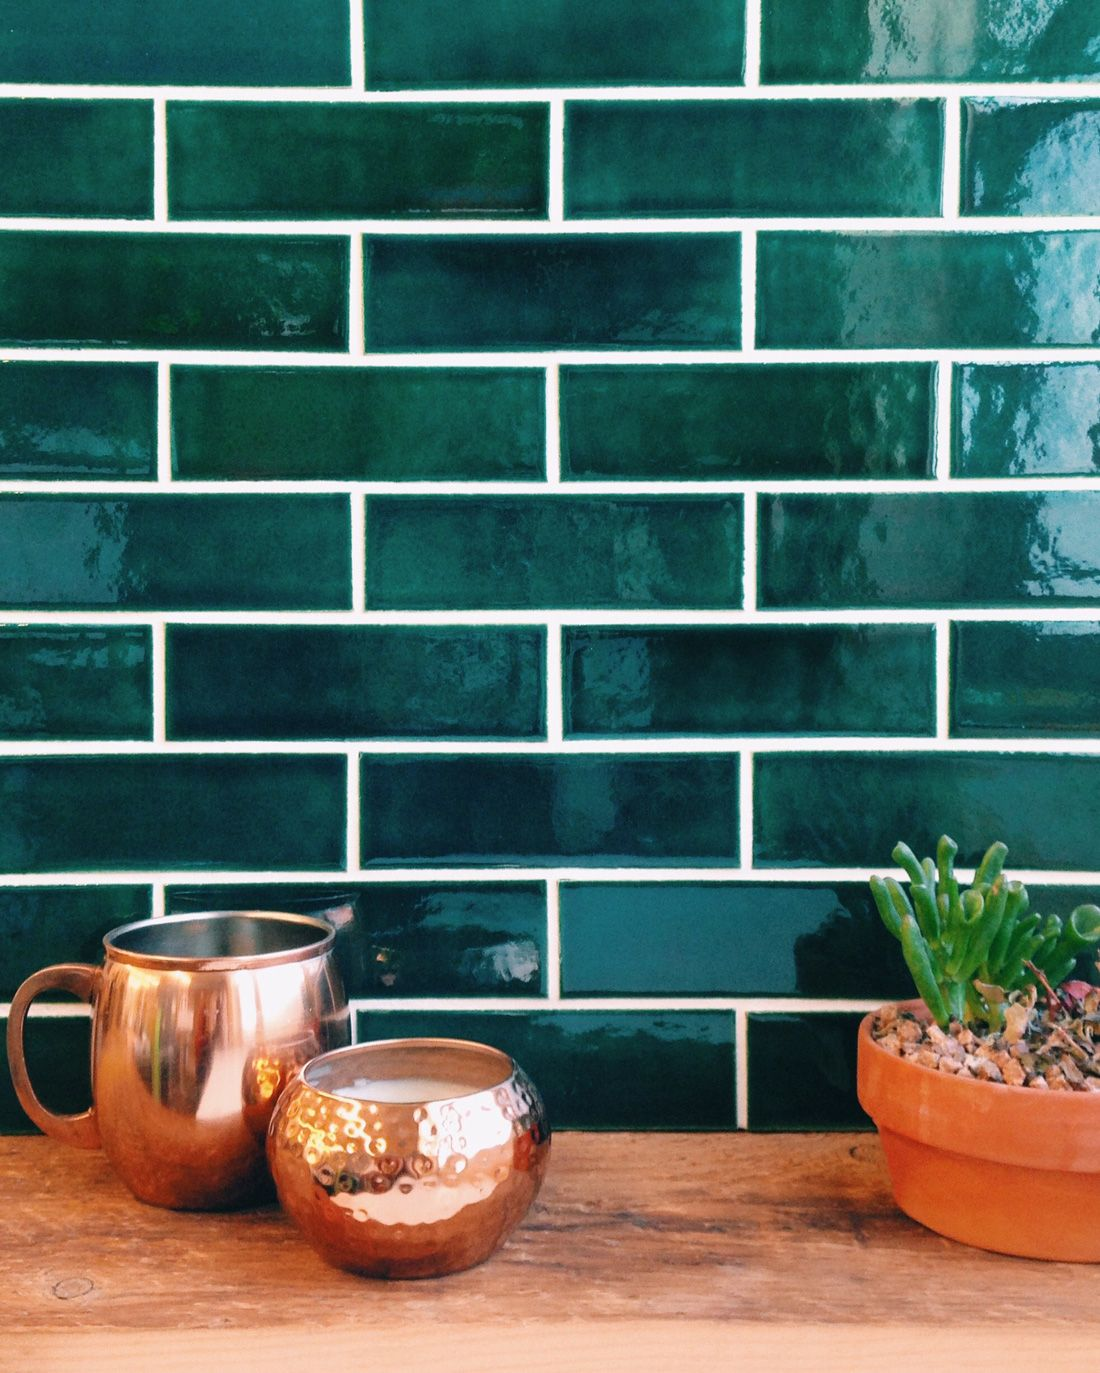 Blog | things i love | Pinterest | Copper kitchen, Kitchens and ...